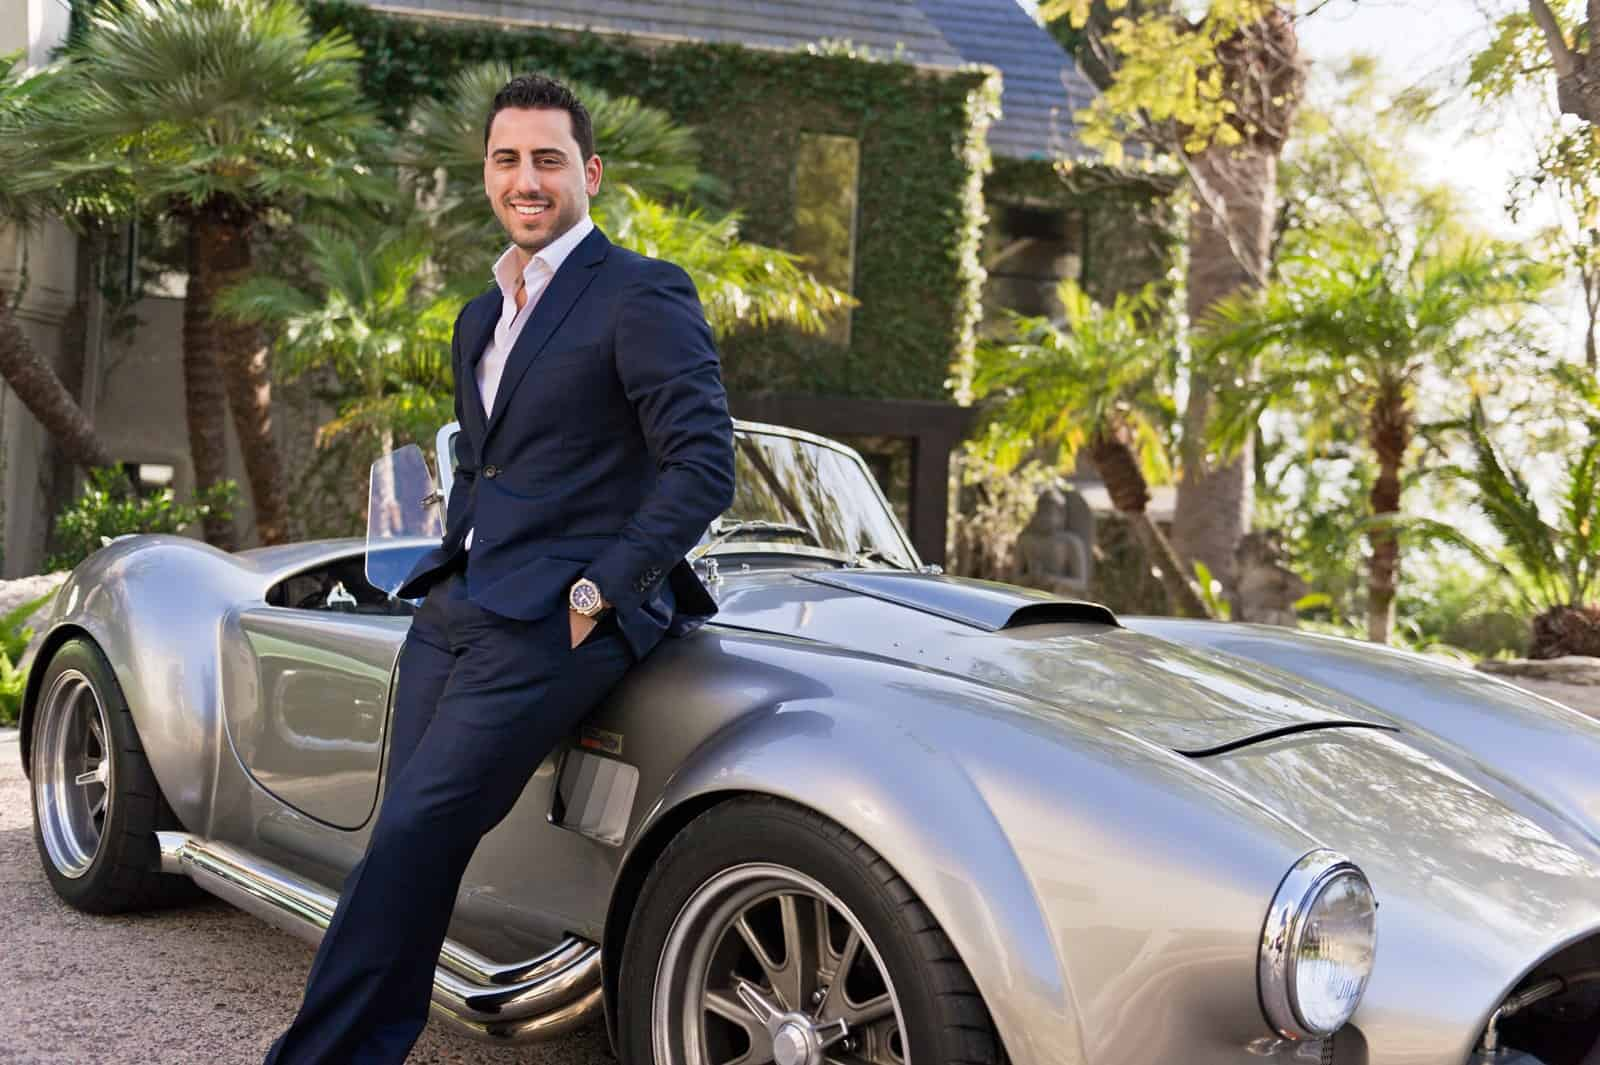 Surprising Past Jobs - Josh Altman